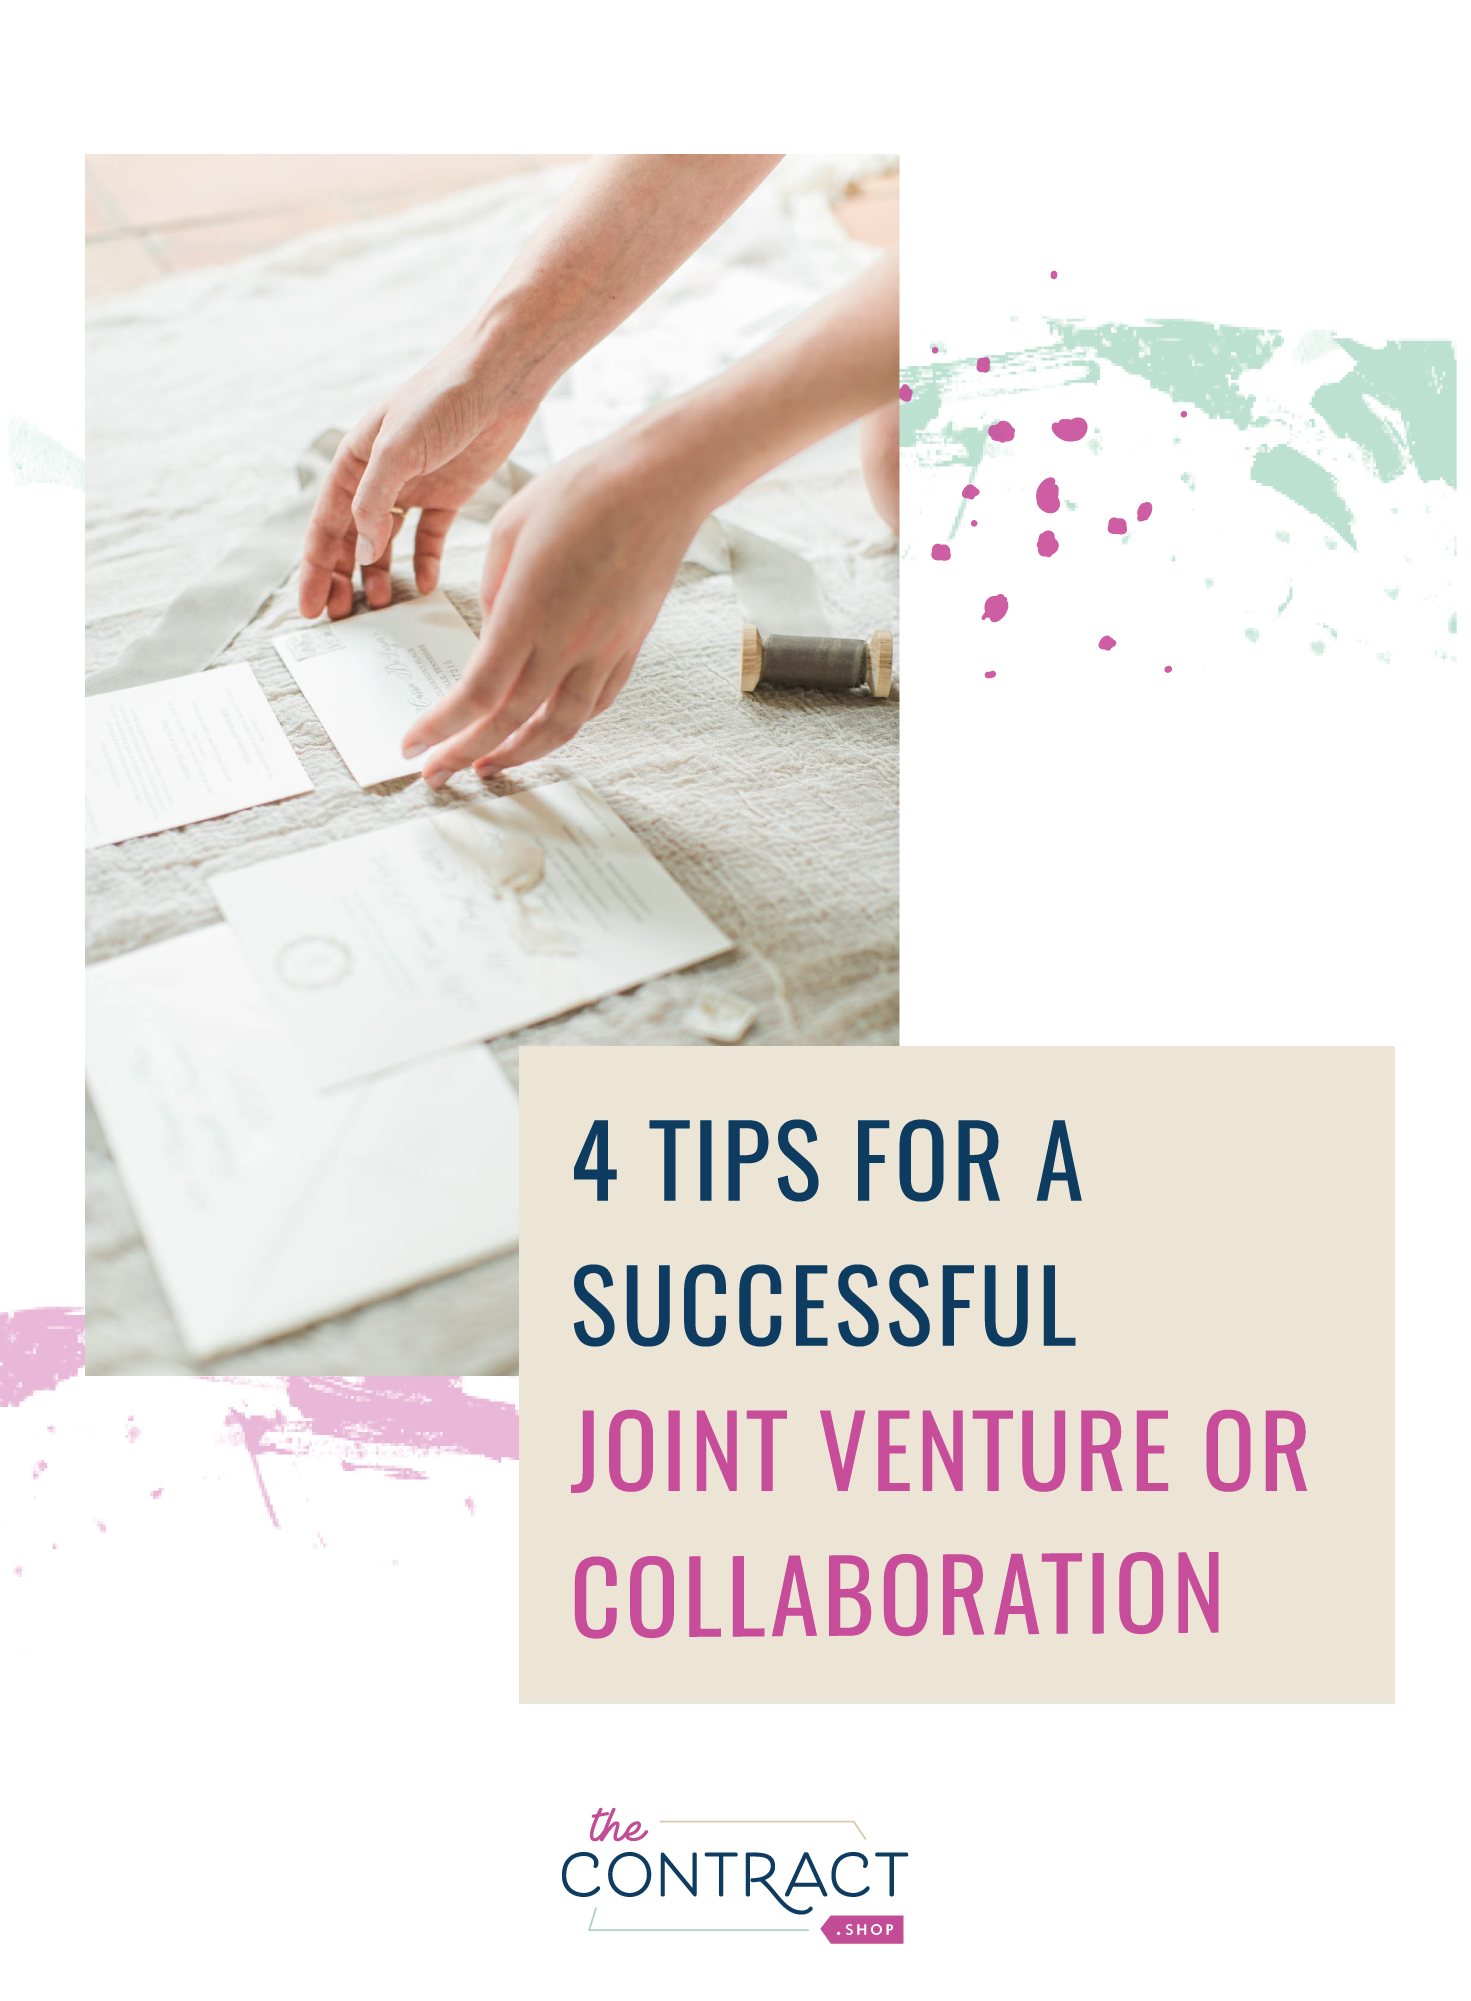 How to have a successful Joint Ventures or Creative Collaboration